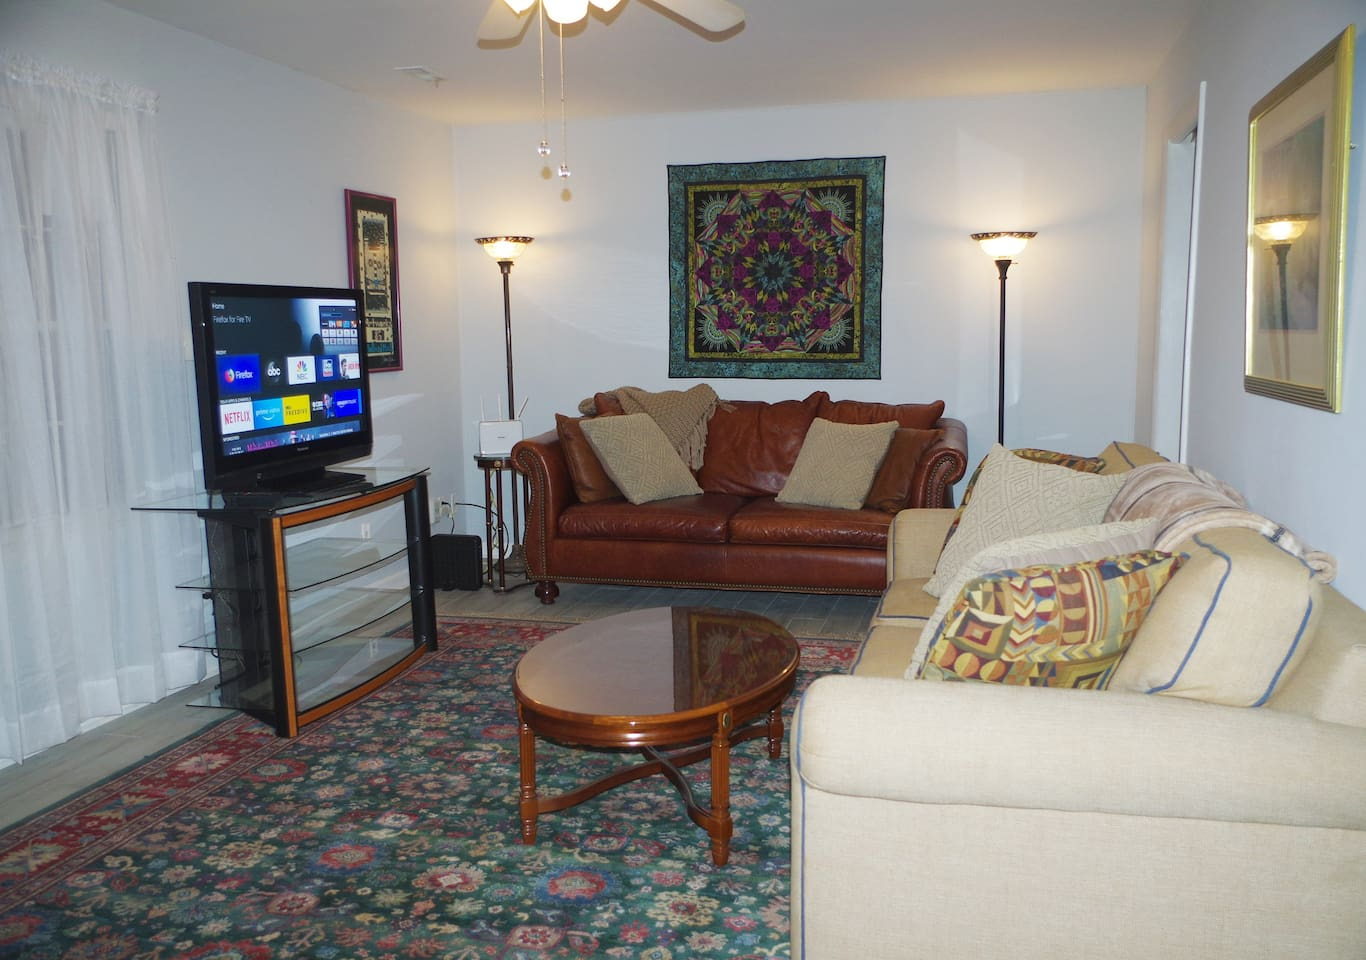 "The Living Room has 2 long sofas which could be used for extra ""single"" sleep space if needed by removing back cushions. Unit could accommodate 8 adults and 2 children. There is an extra charge of 10$ per adult over 6 adults."